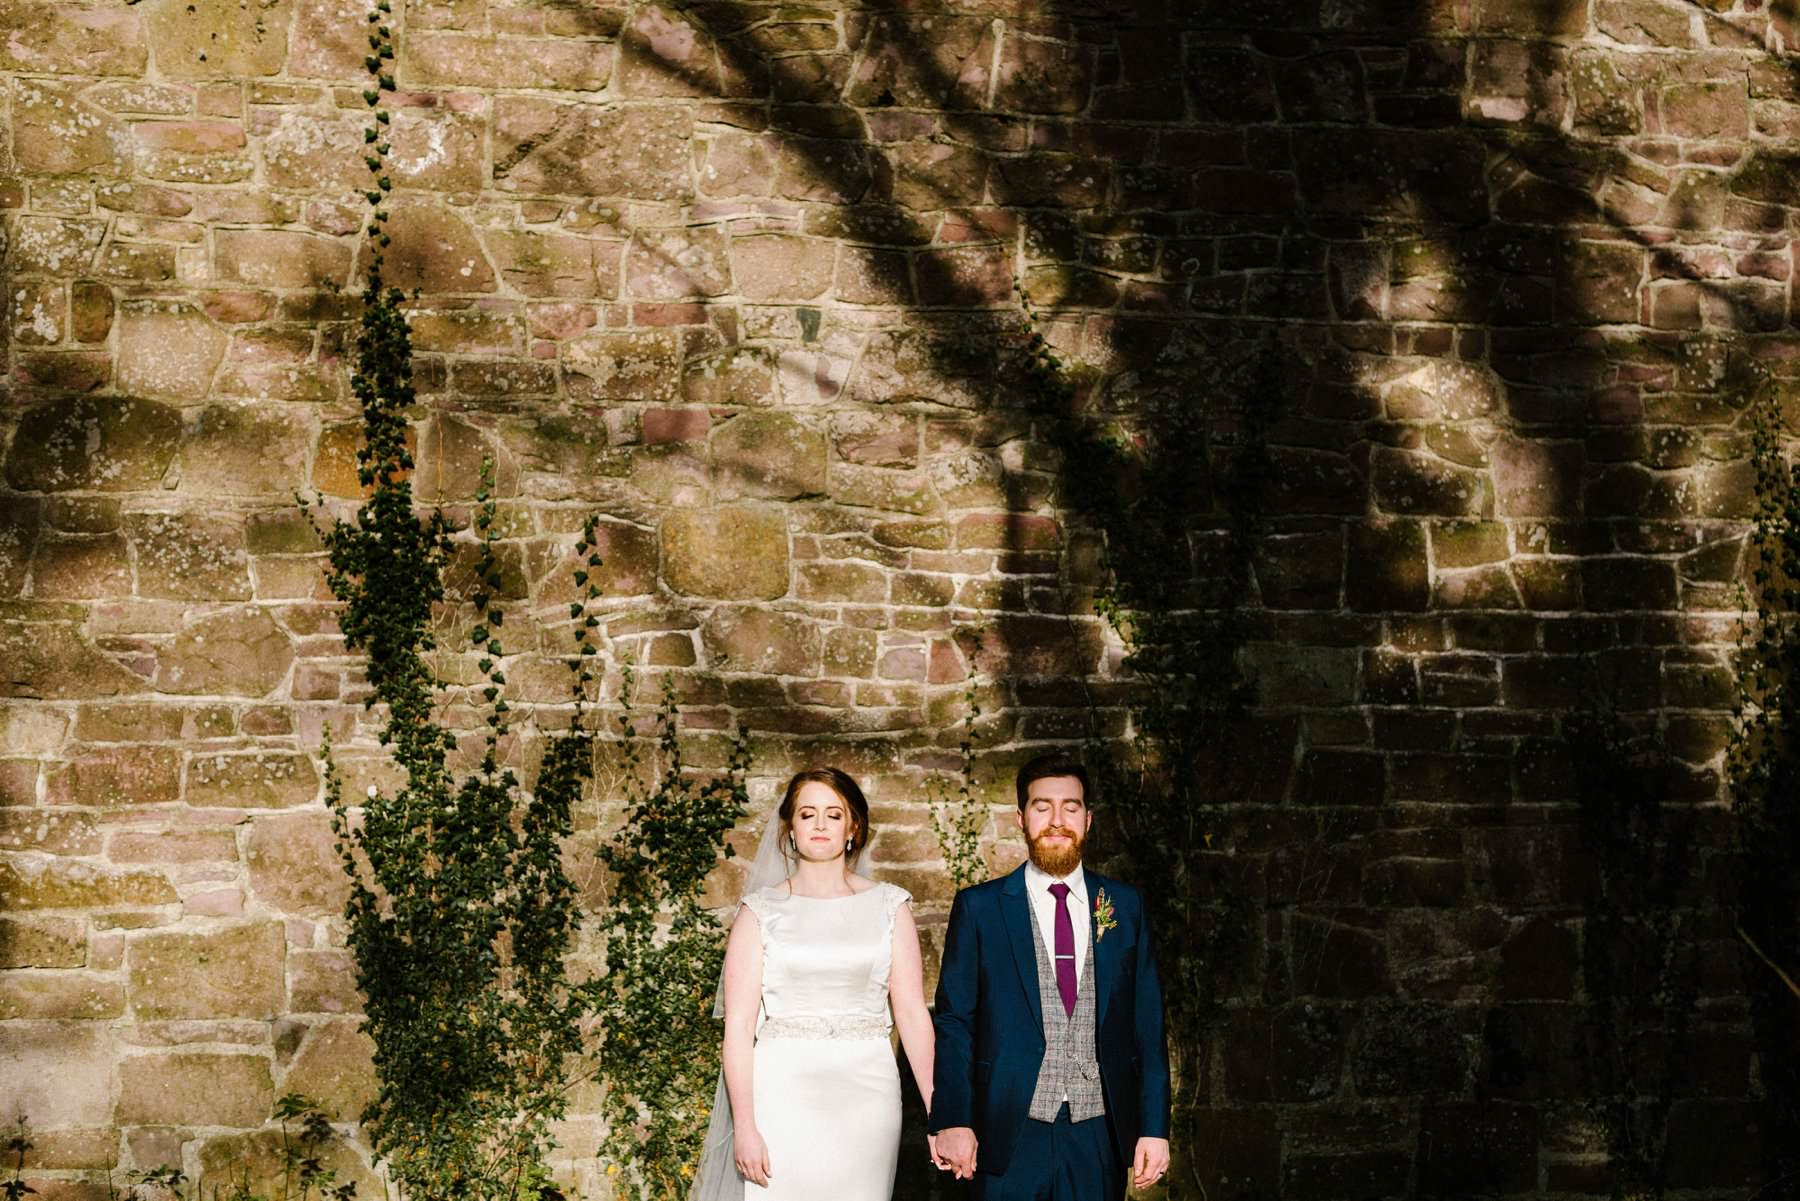 light and shadow wedding portraits ireland